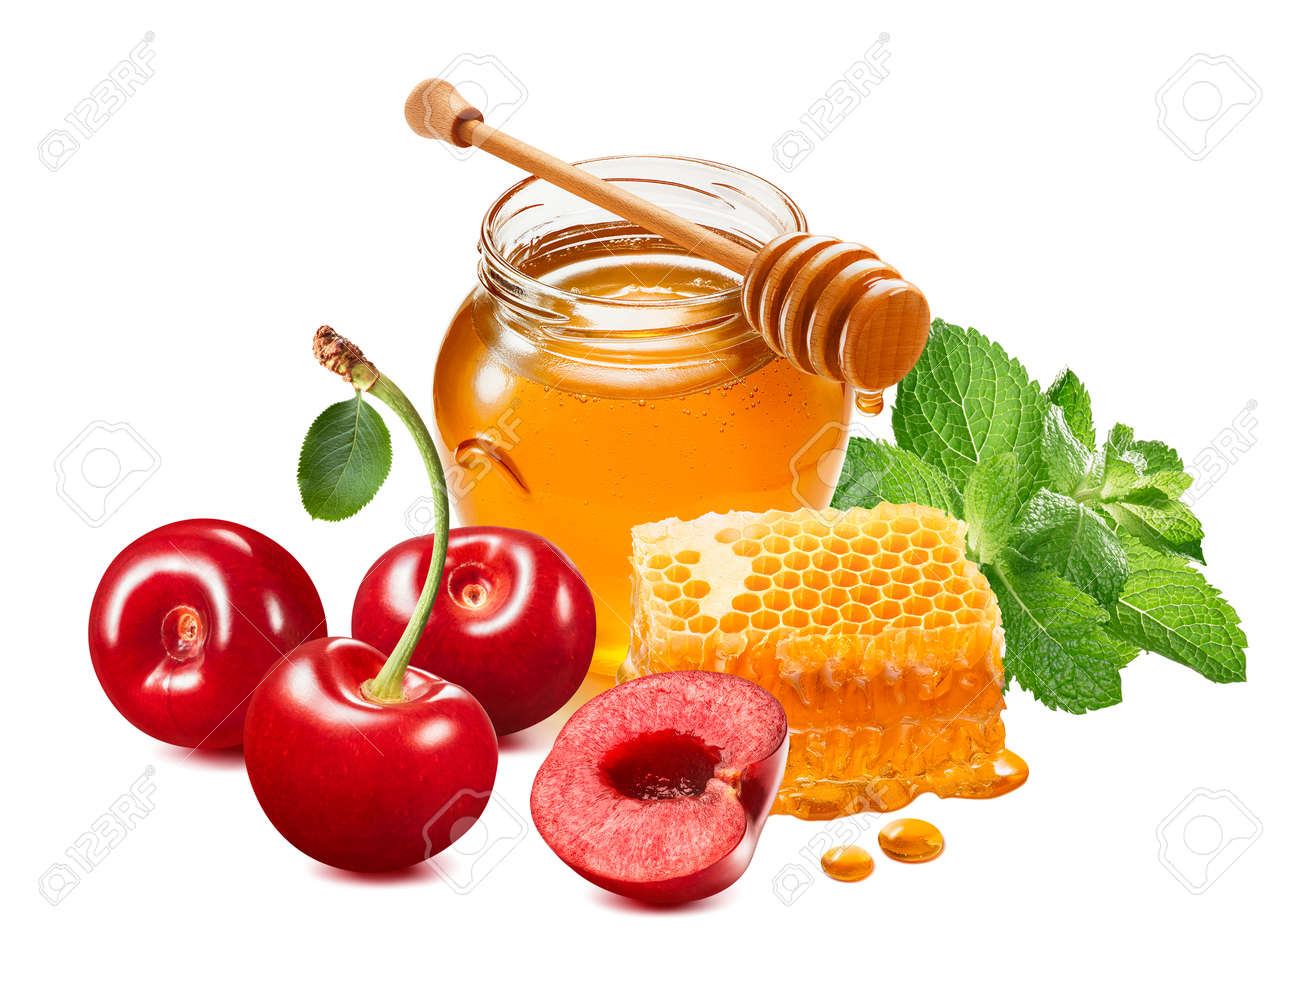 Sweet red cherries, mint and honey. Berries, glass jar and honeycomb isolated on white background. Package design element with clipping path - 172432369